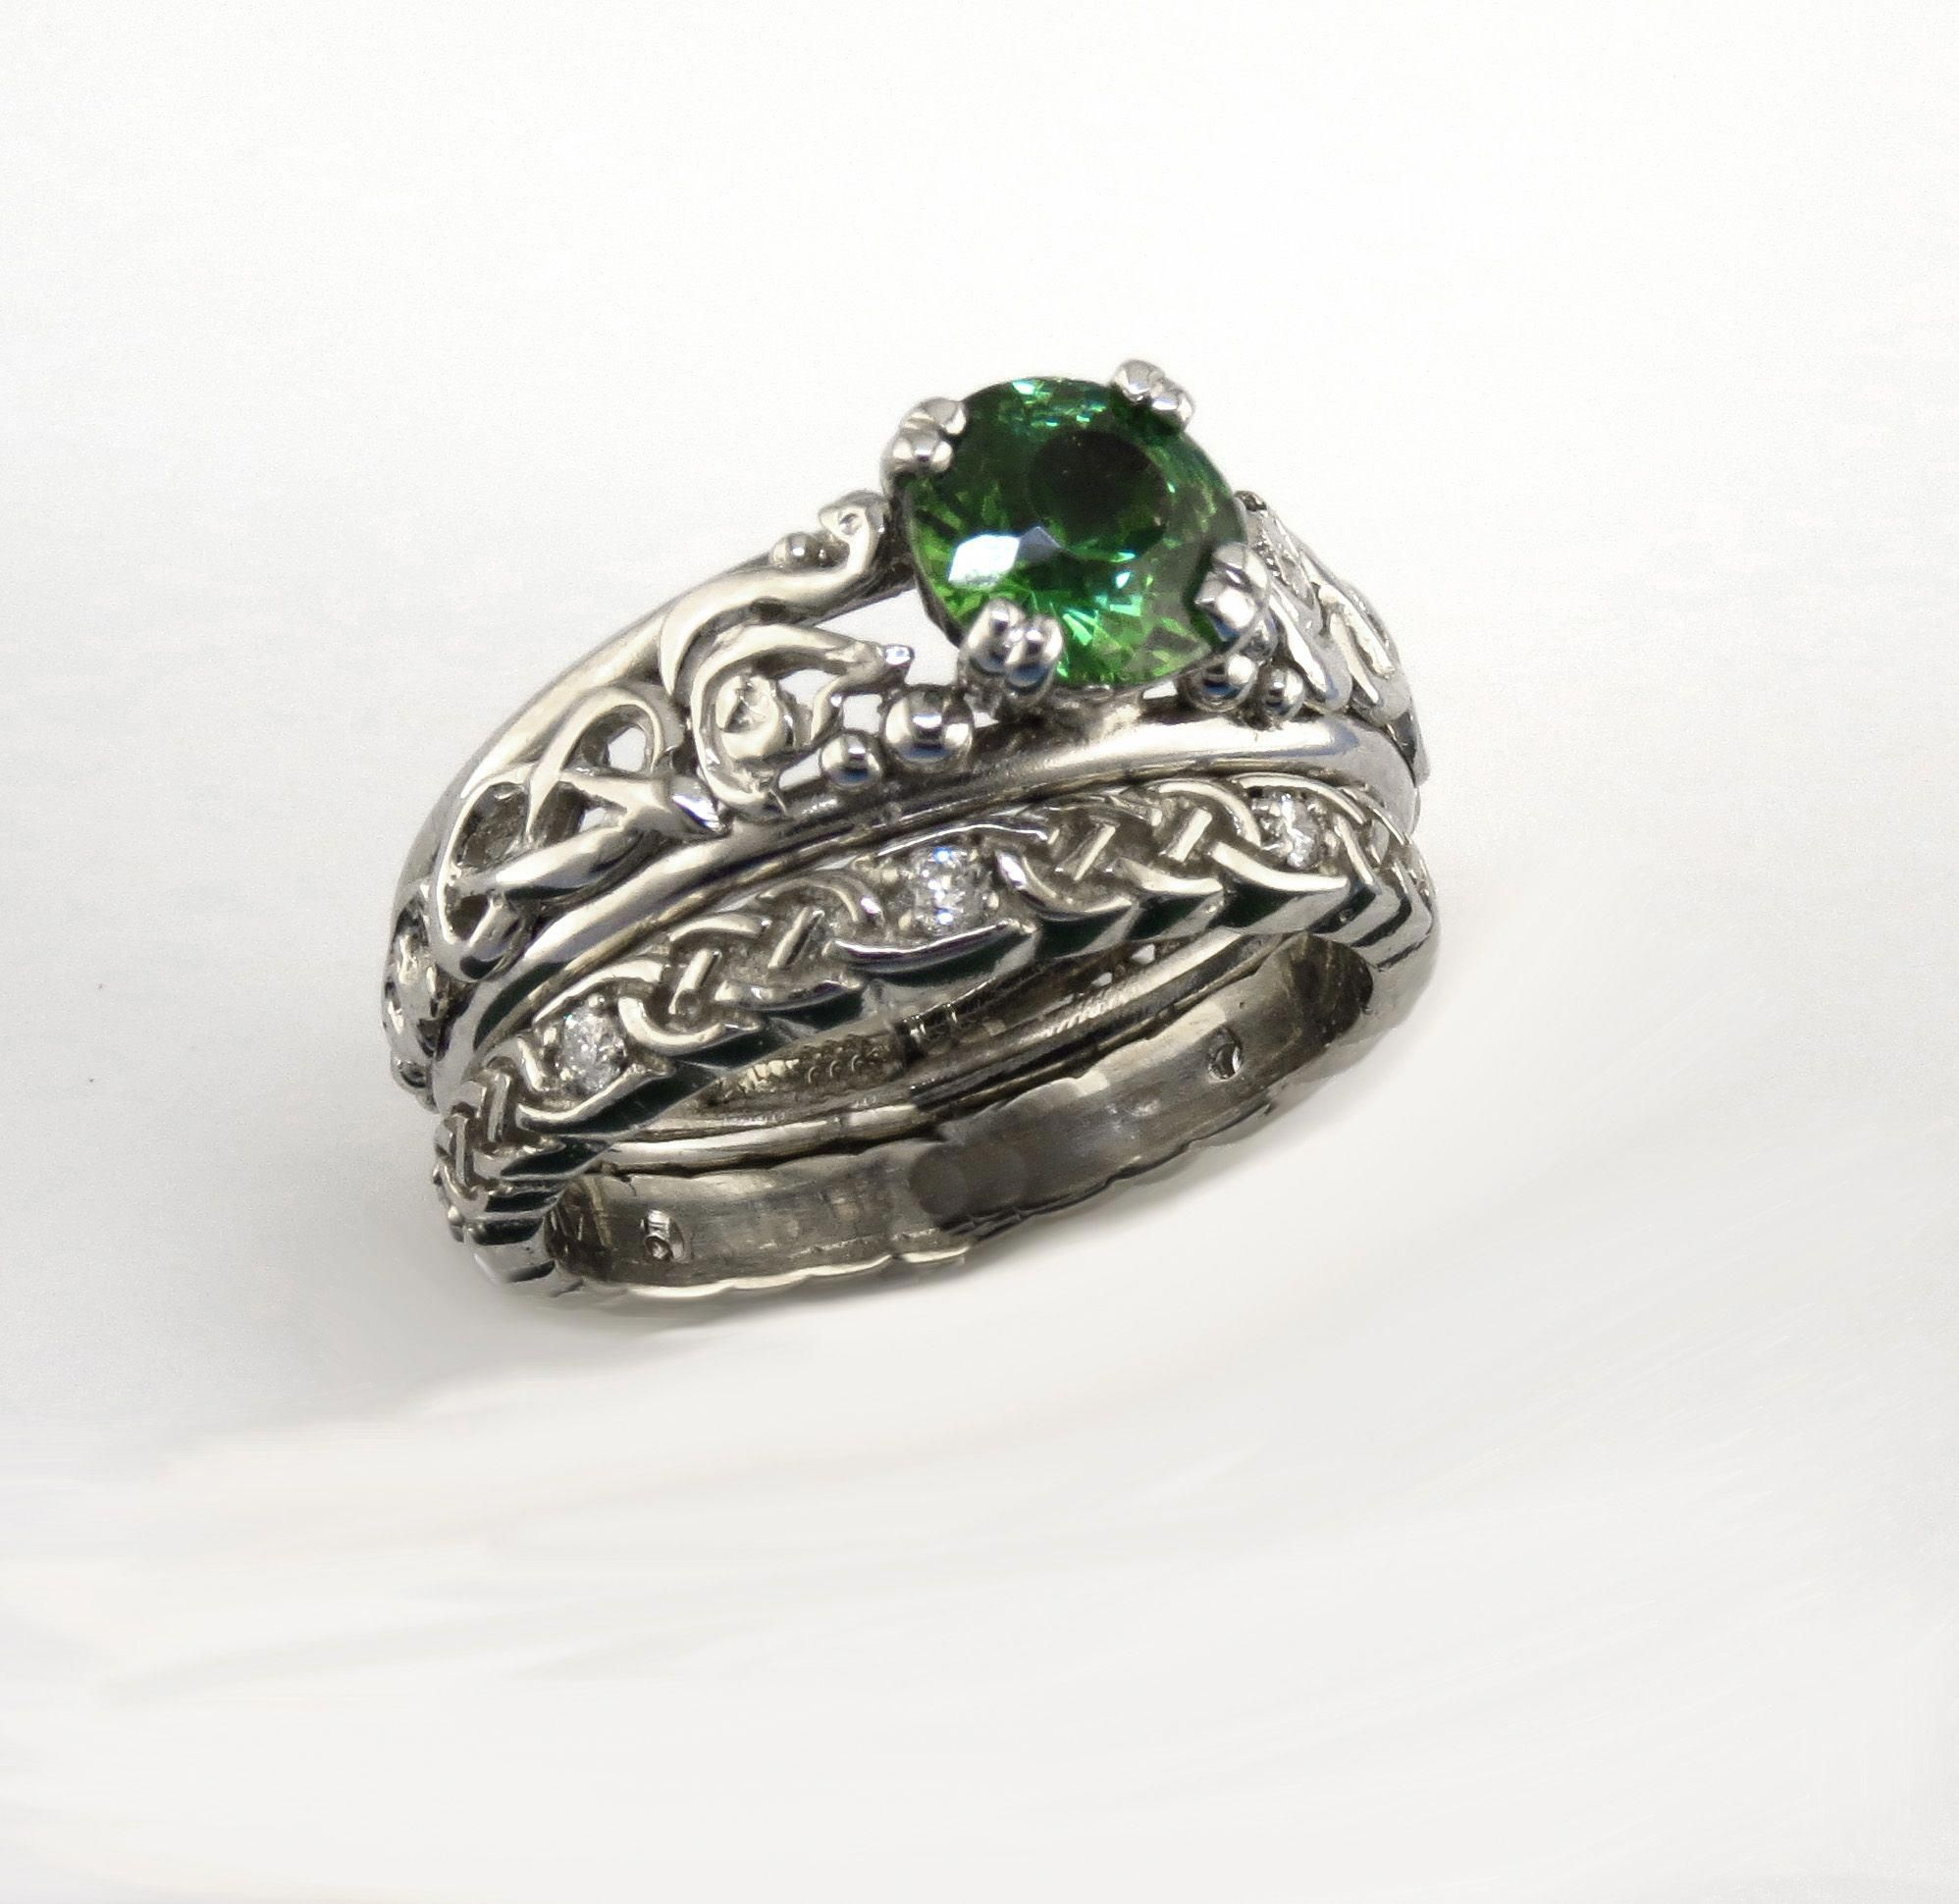 A stunning custom Wedding set in 14K White gold, with hand